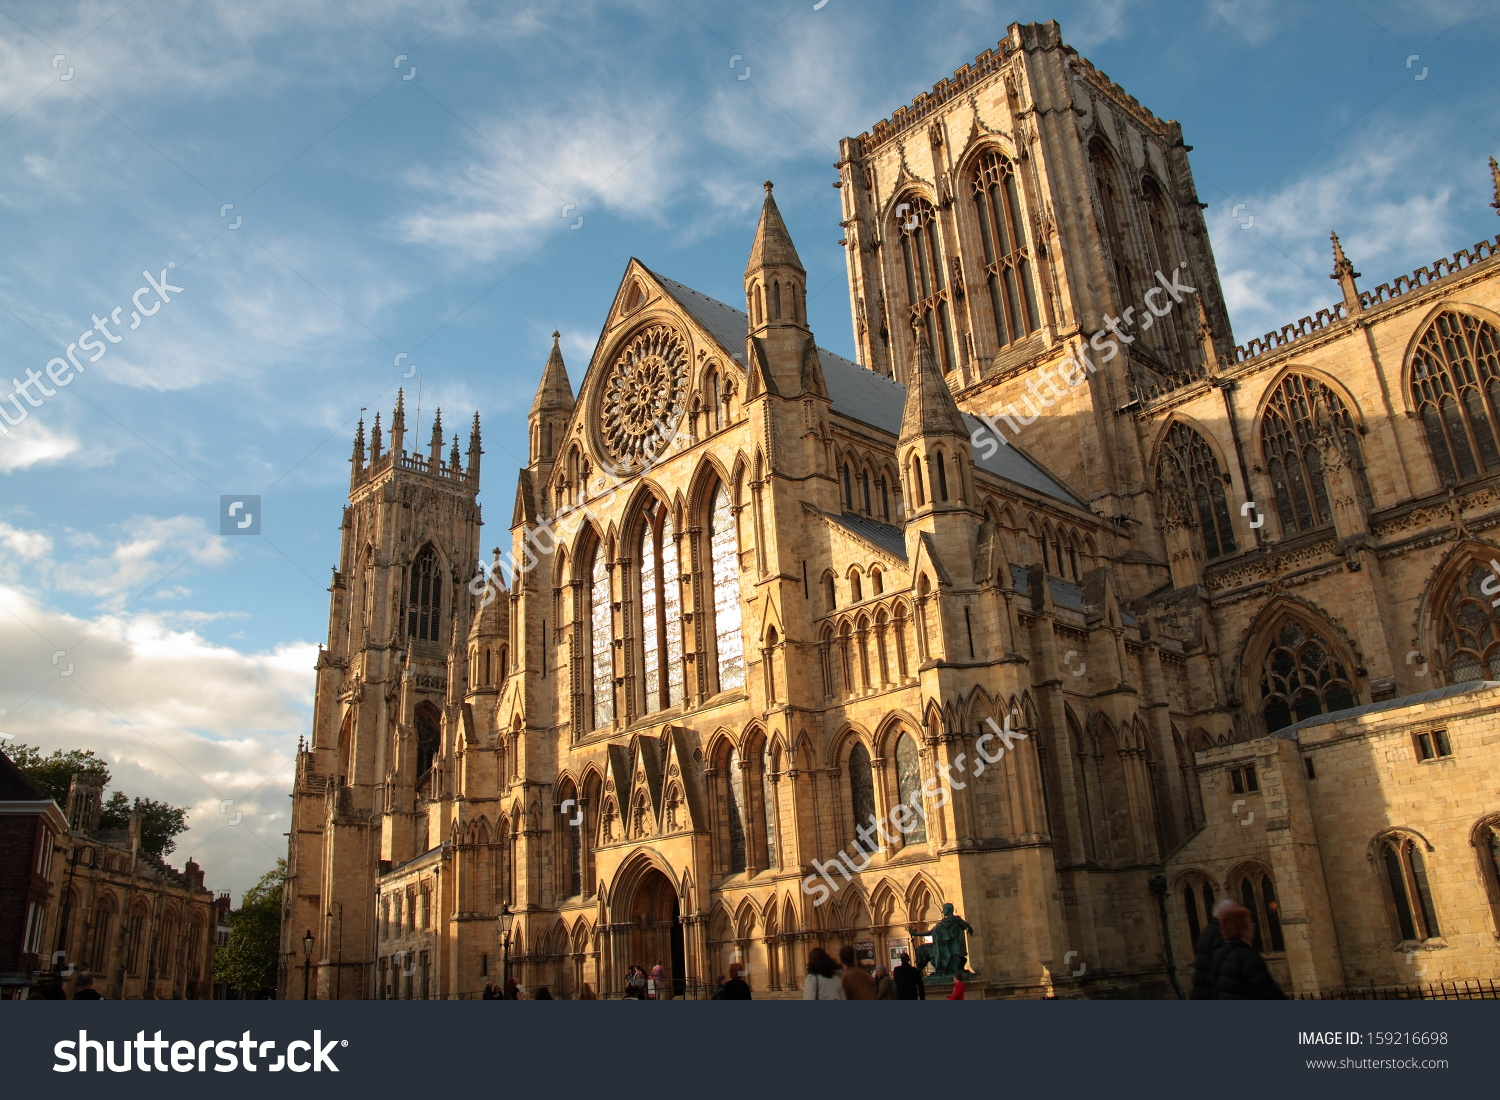 Westminster Cathedral York Uk Stock Photo 159216698.